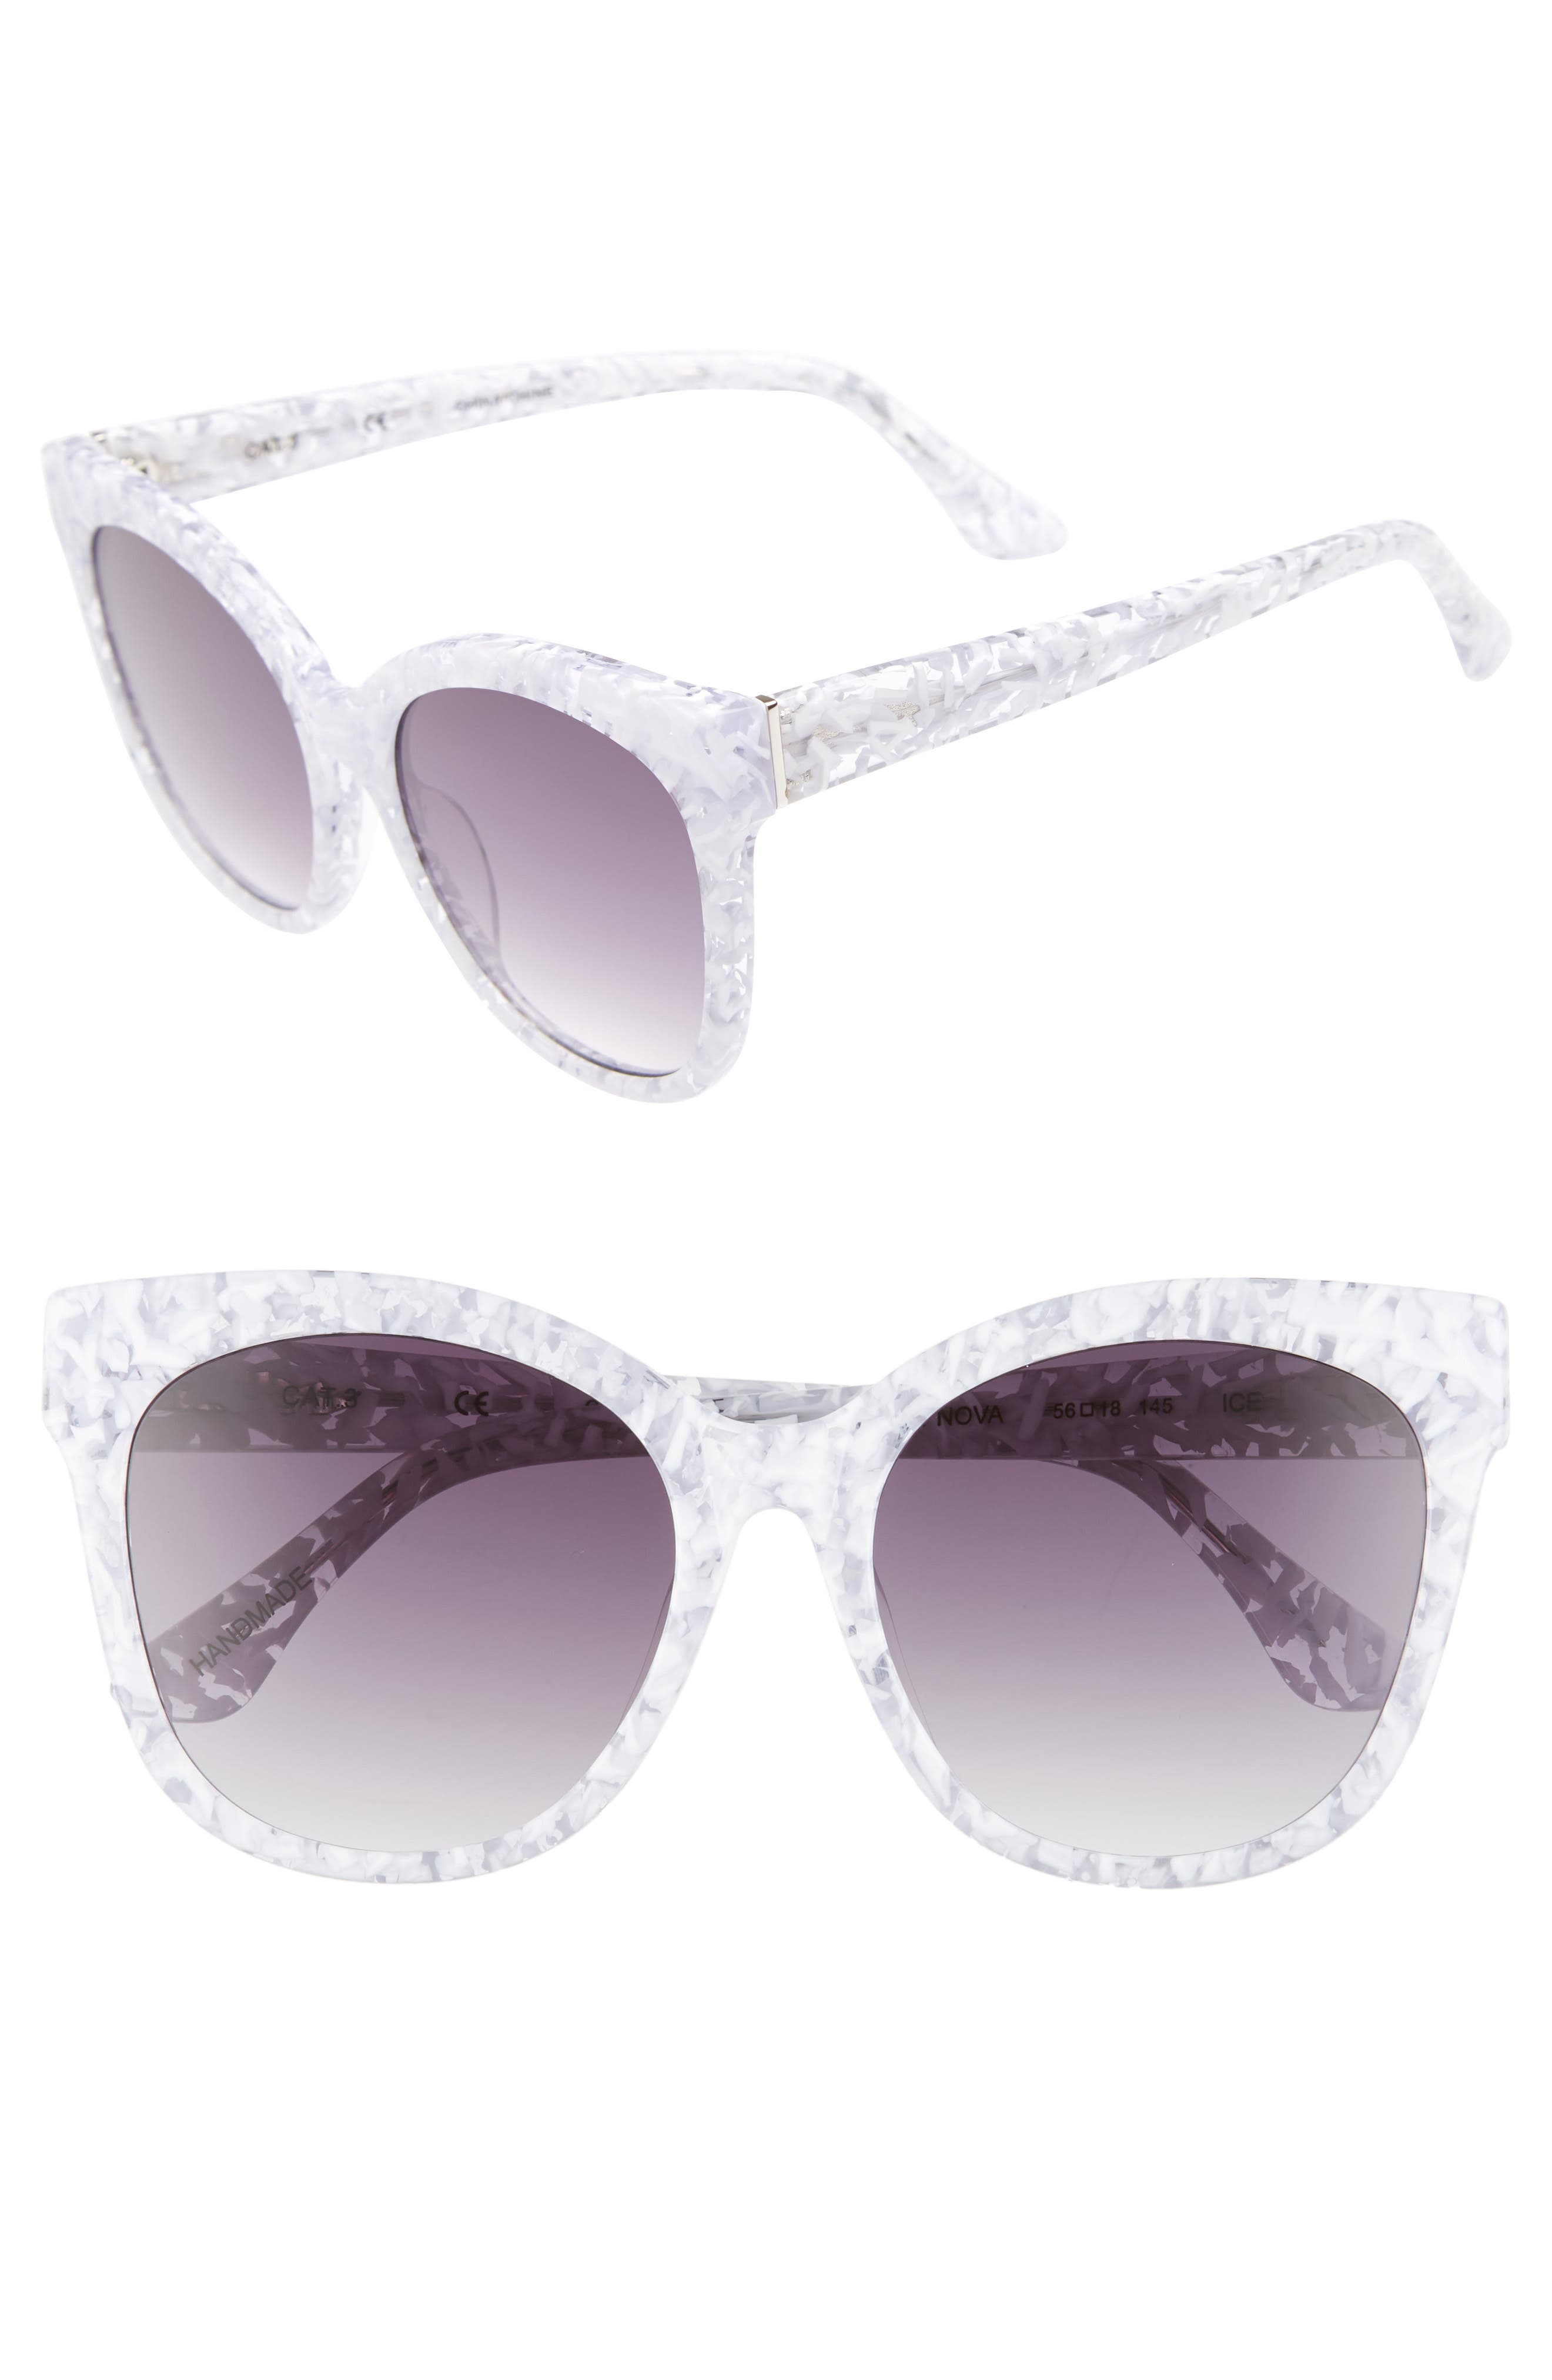 Bossa Nova 57mm Cat Eye Sunglasses,                         Main,                         color, White Speckle